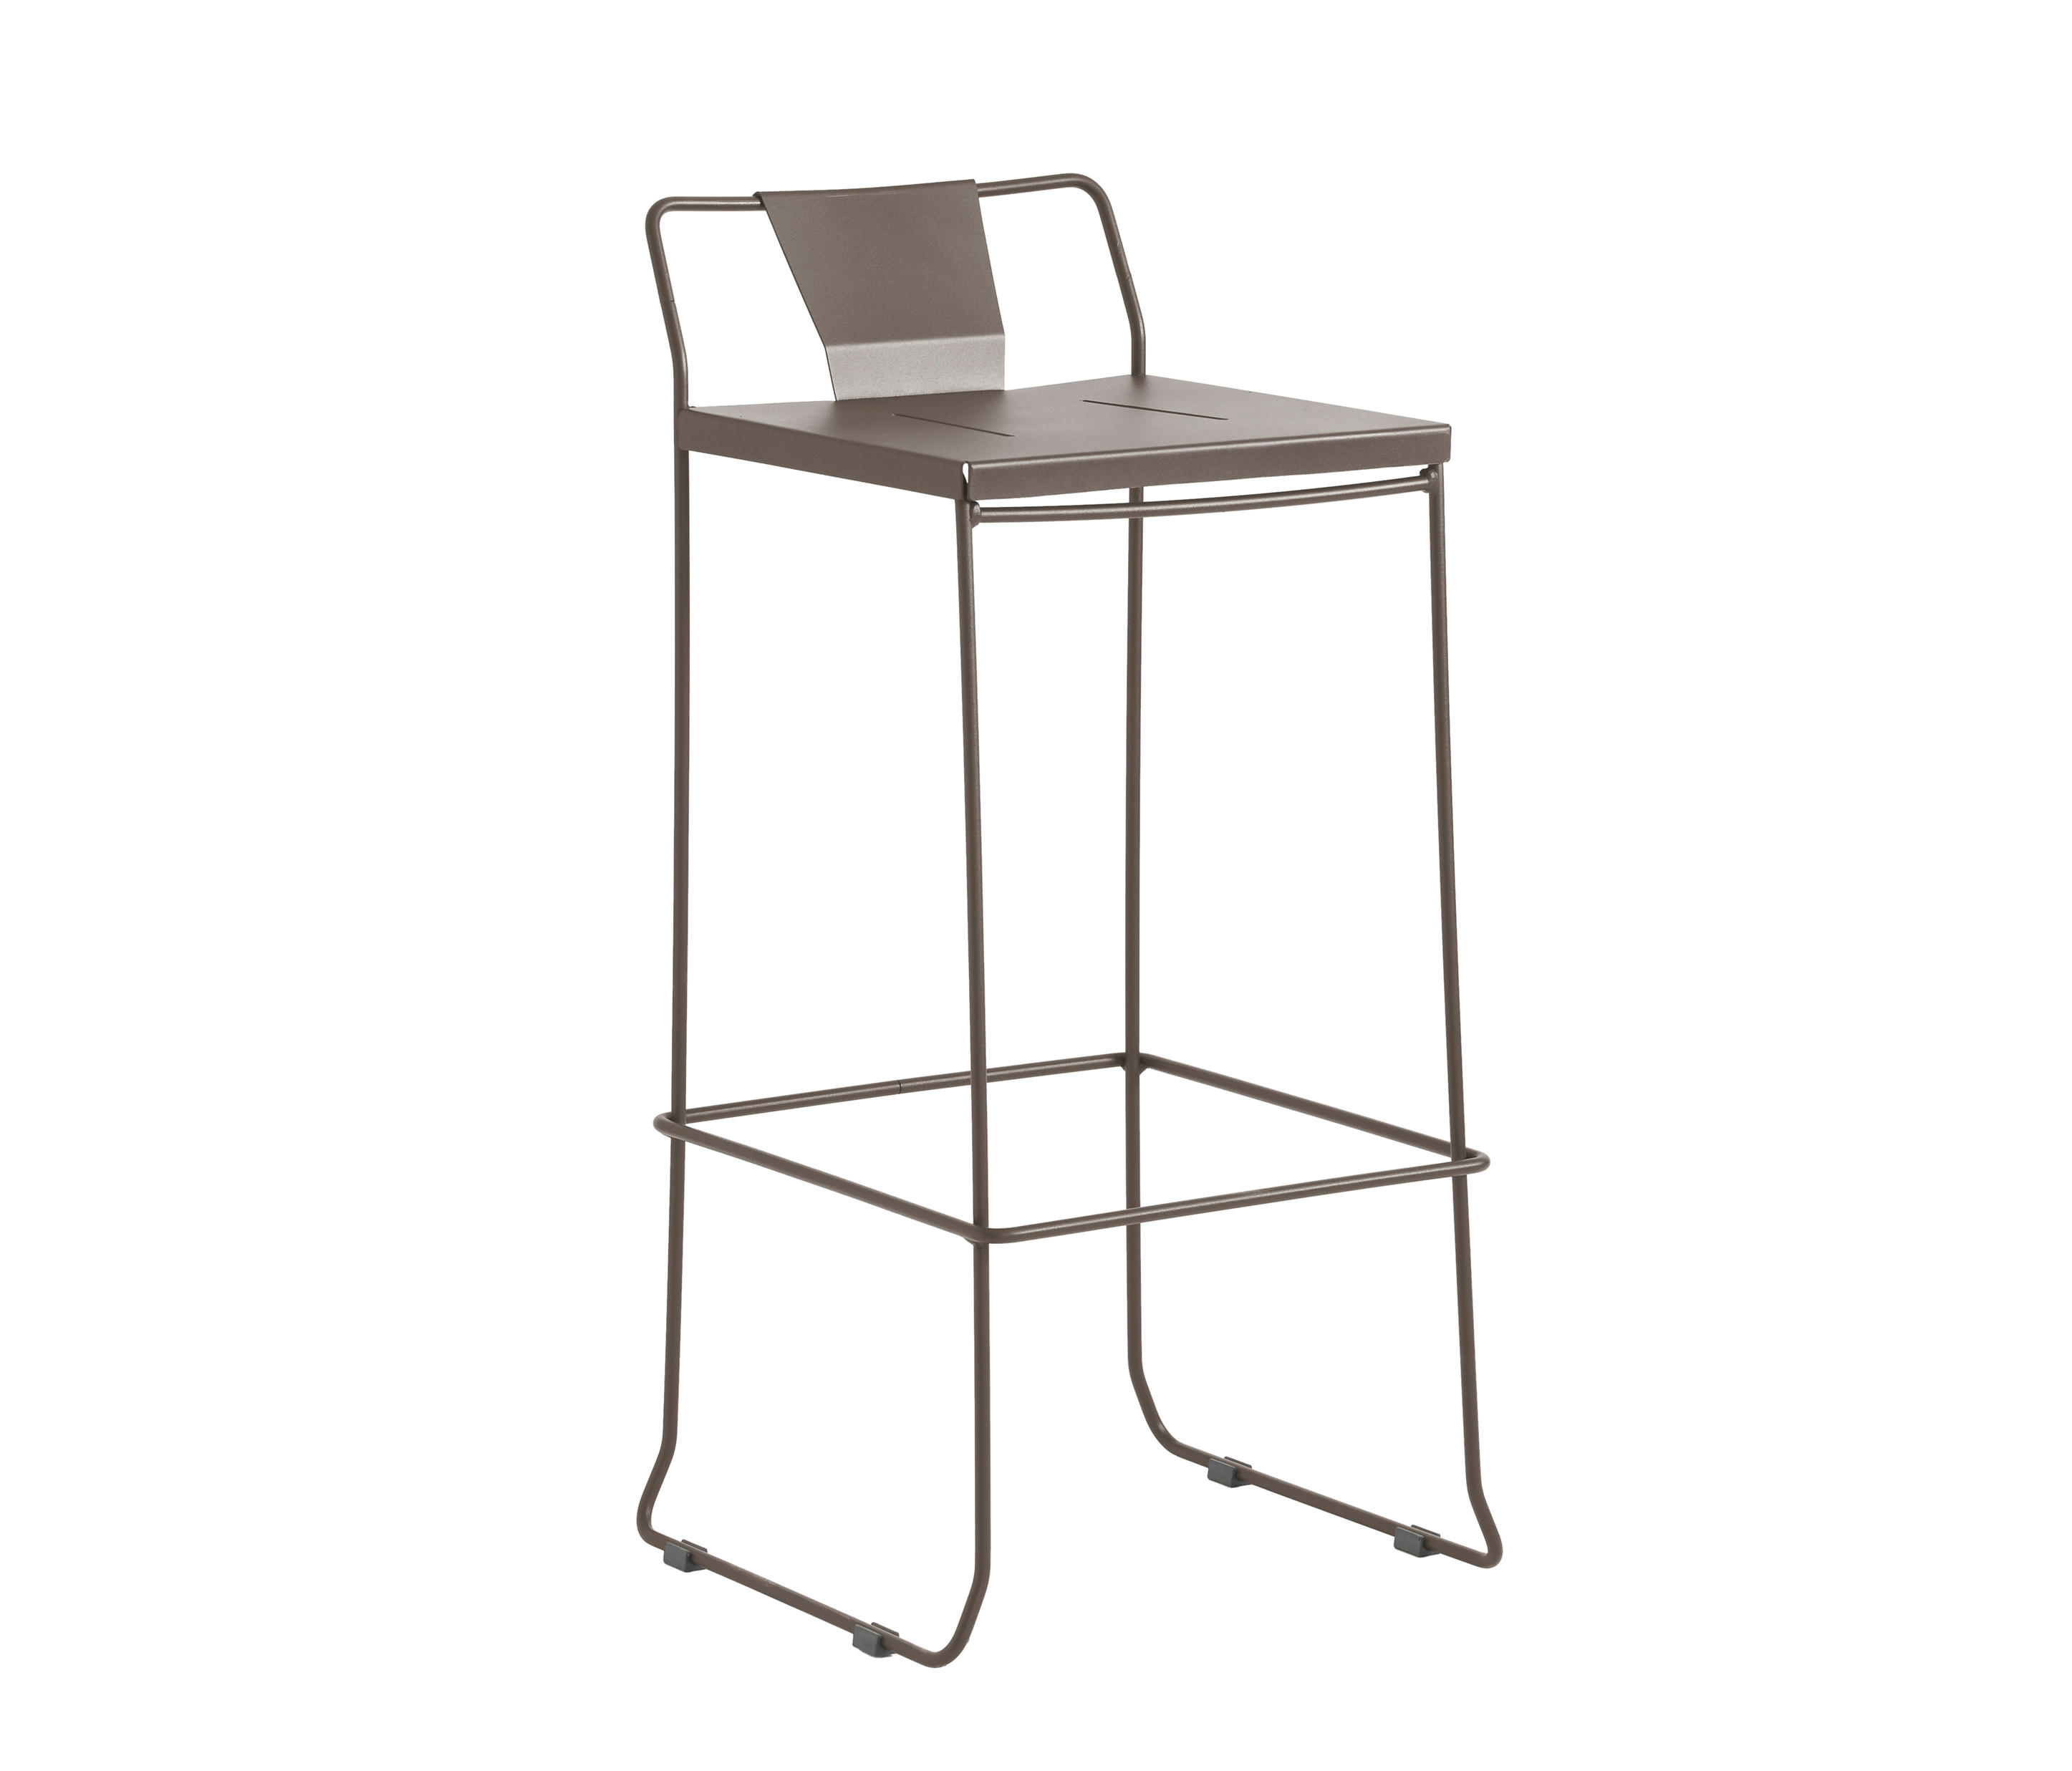 Chicago Barstool Designer Furniture